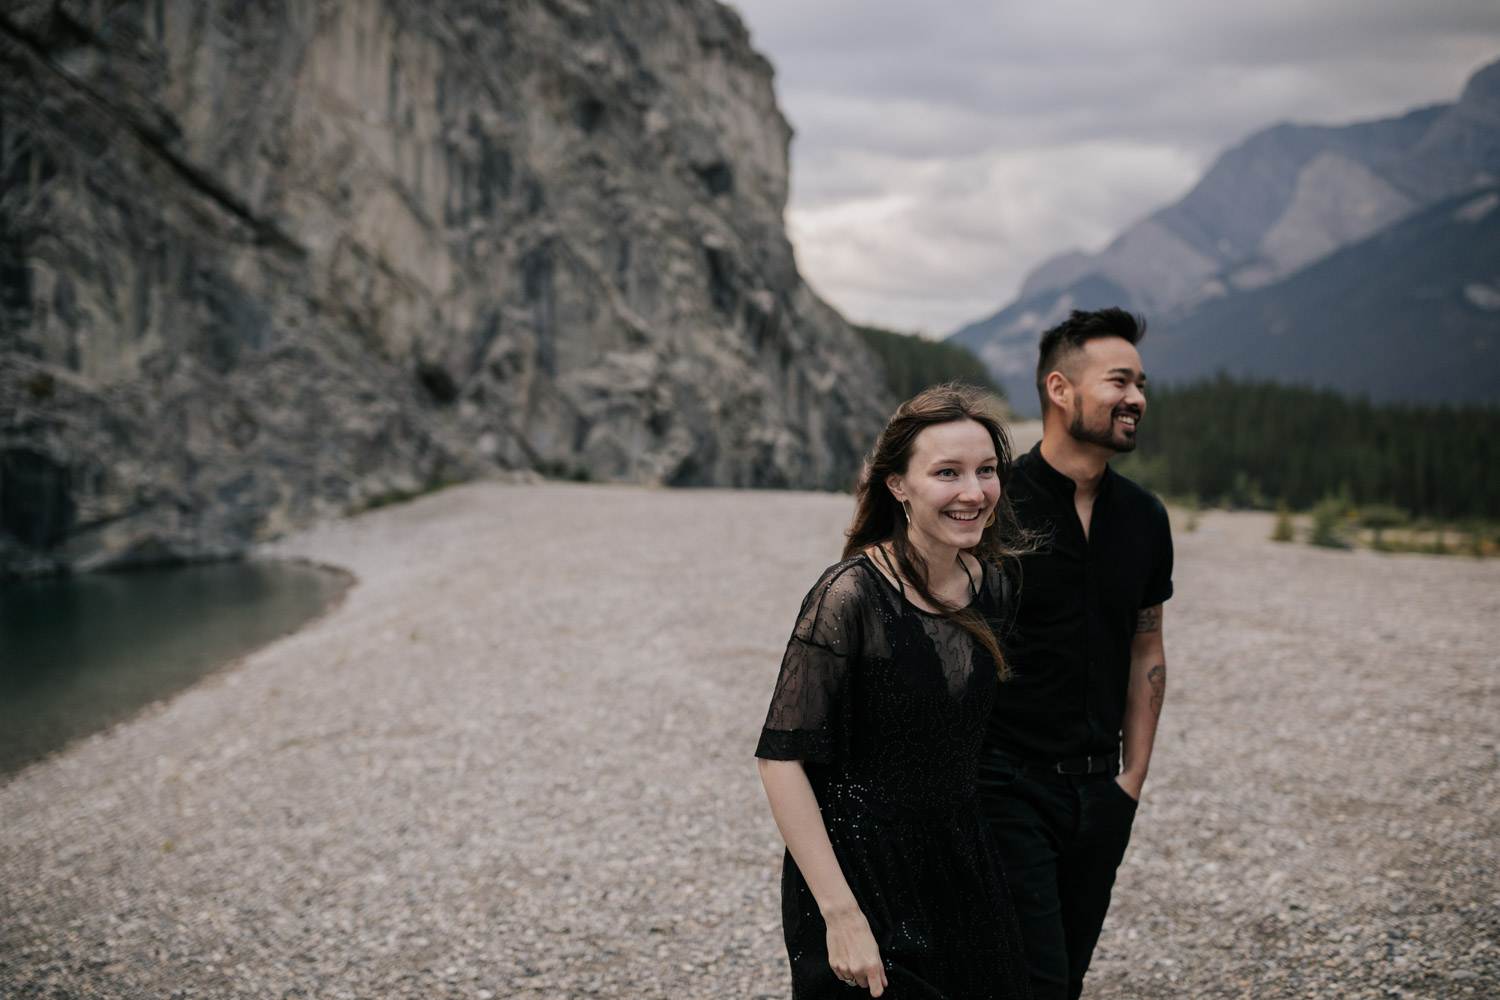 Couple Laughs And Has Fun At Turquoise Blue Lake Louise In Alberta